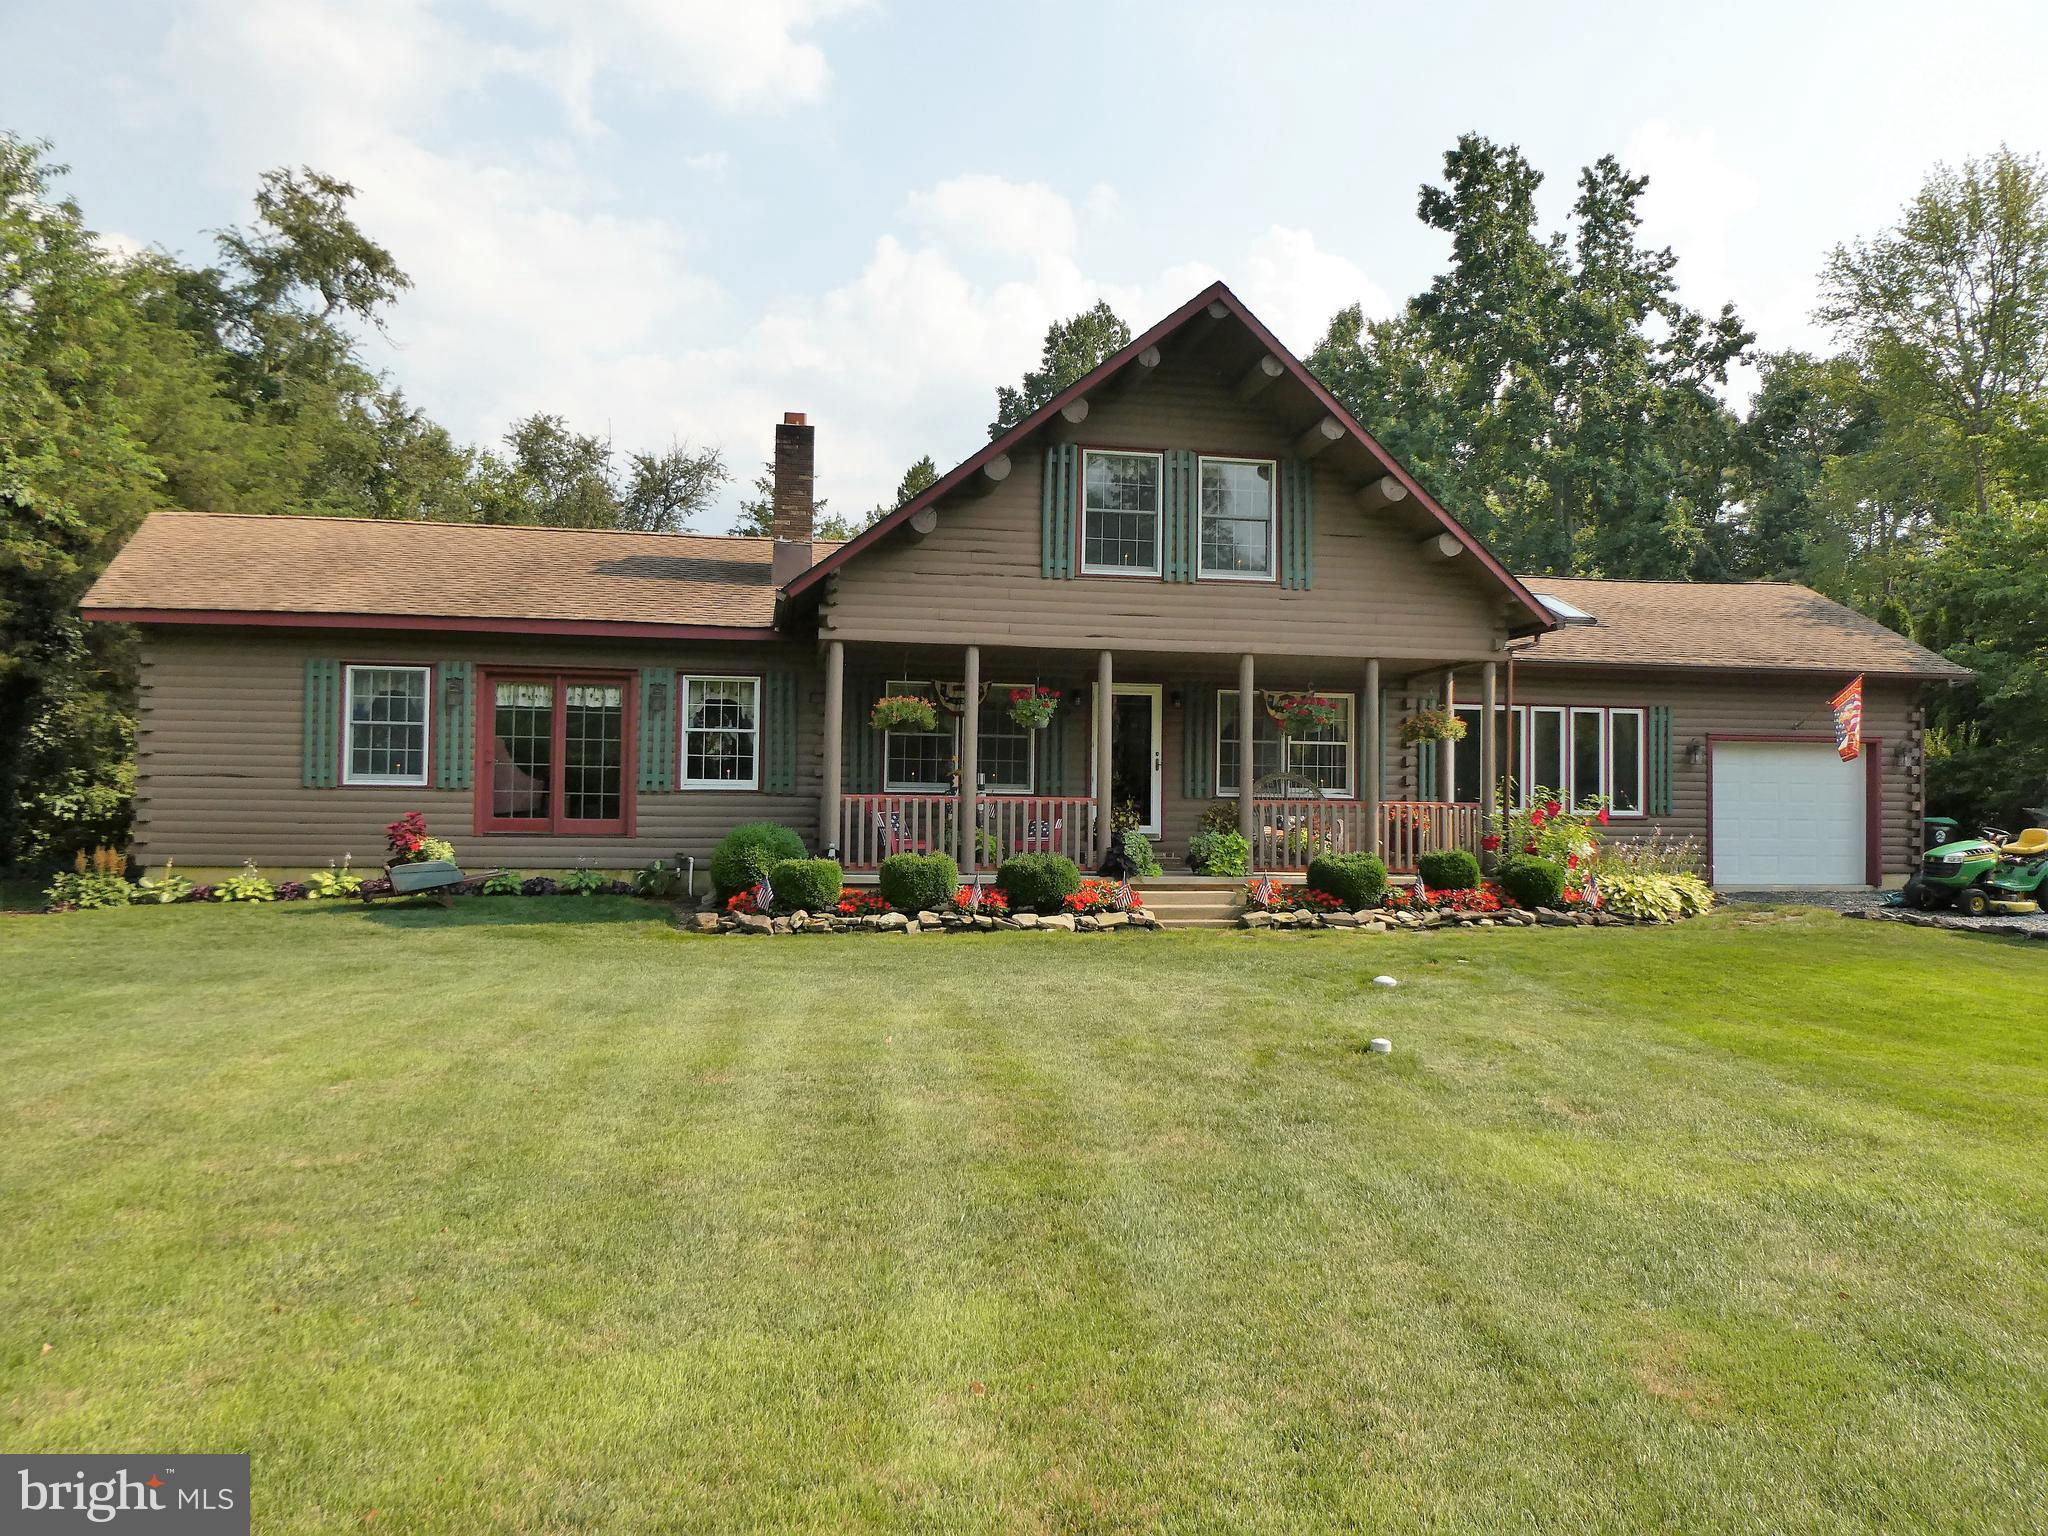 """Looking for your own Piece of Paradise!  This is it!! This impeccable two story """"Log Cabin"""" style house on almost 1 acre.  This is your dream come true.  Three bedrooms, two baths, master suite with walk in closet and 19x12 sitting area.  26x13 great room with a brick fireplace.  22x14 kitchen, 14x12 sunroom.  Massive open ceiling with real log beams.  24x17 loft. Gorgeous hardwood floors as well as ceramic floors throughout.  Partial basement, and an attached 1 car garage.  Meticulously manicured landscape.  Spacious deck overlooking a park like setting rear yard with a heated 20 x 40 inground pool!  This is one not to be missed.....Hurry! All appliances are included."""